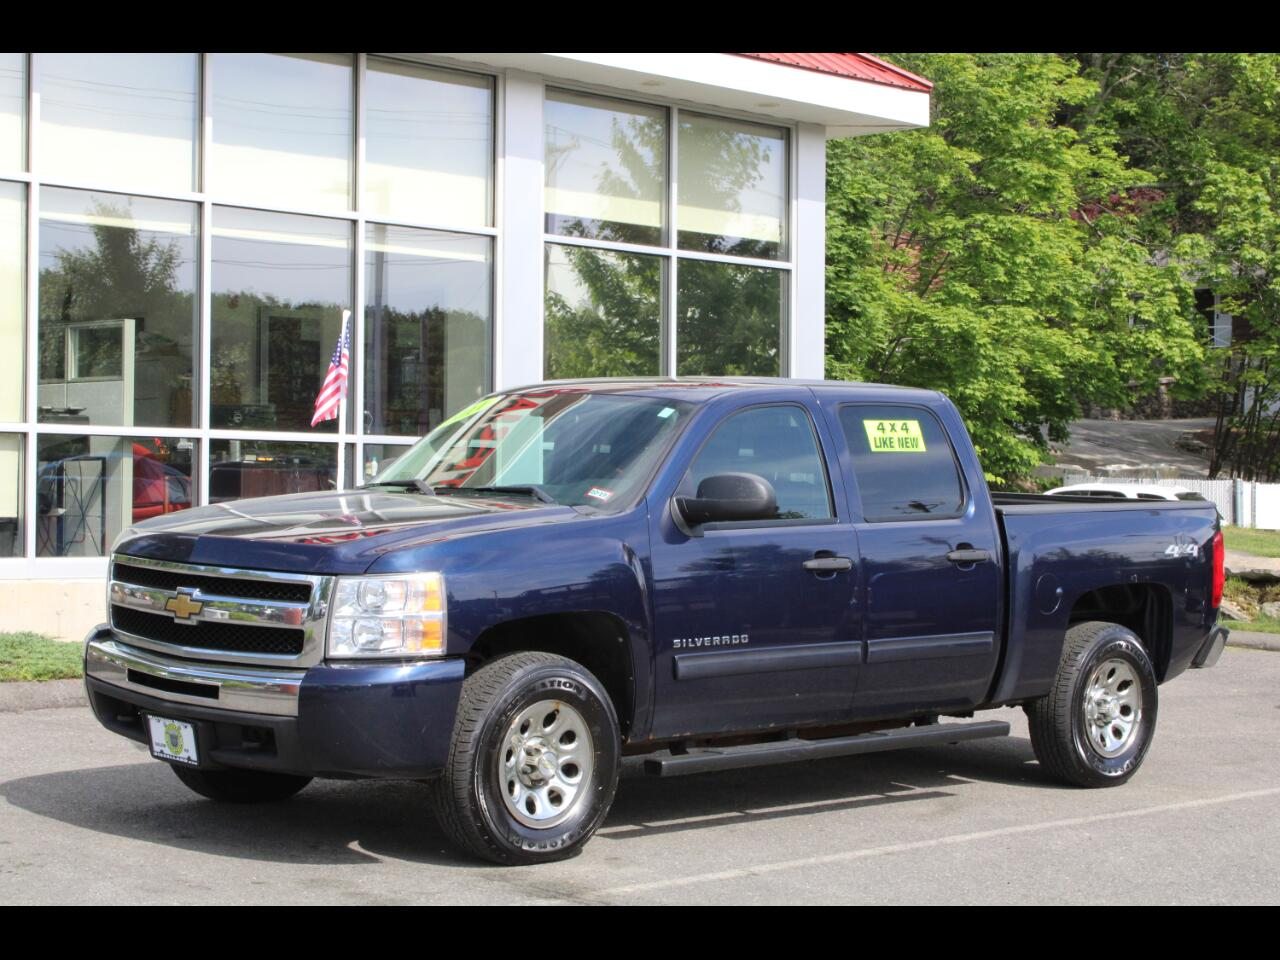 2011 Chevrolet Silverado 1500 CREW CAB SHORT BED 4 NEW TIRES ICE COLD A/C